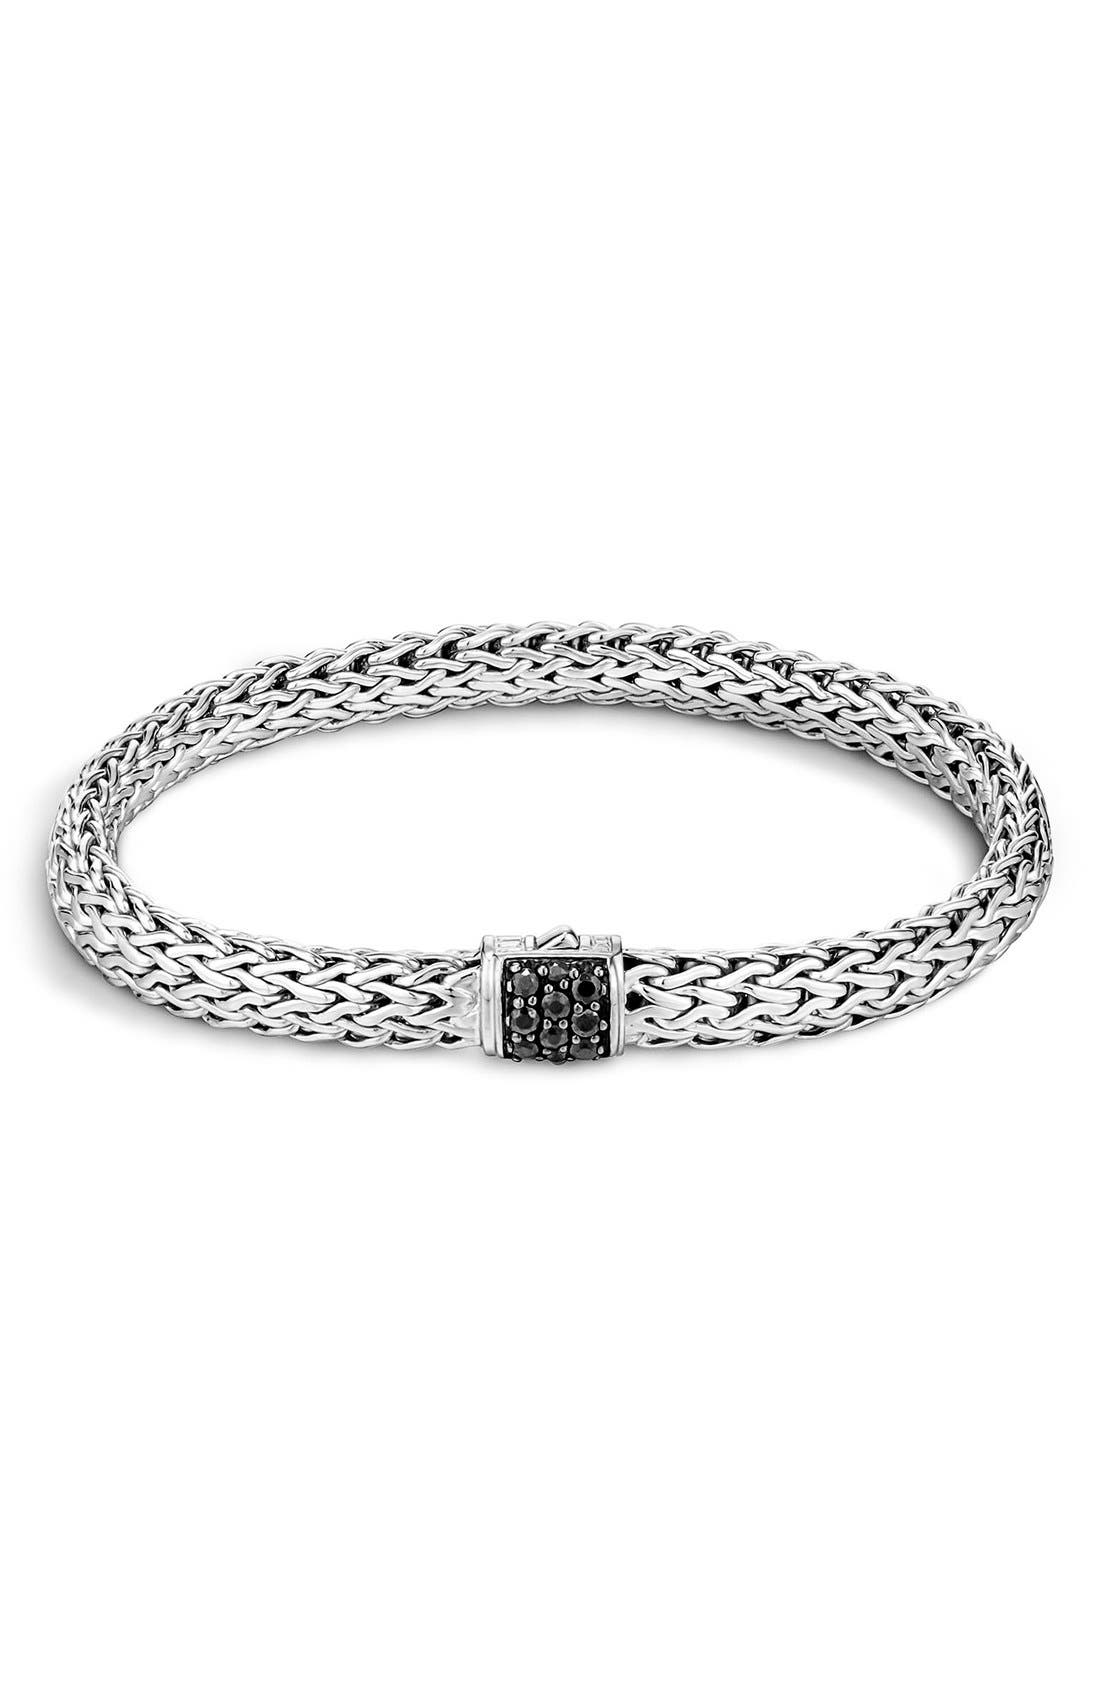 Classic Chain 6.5mm Bracelet,                         Main,                         color, SILVER/ BLACK SAPPHIRE